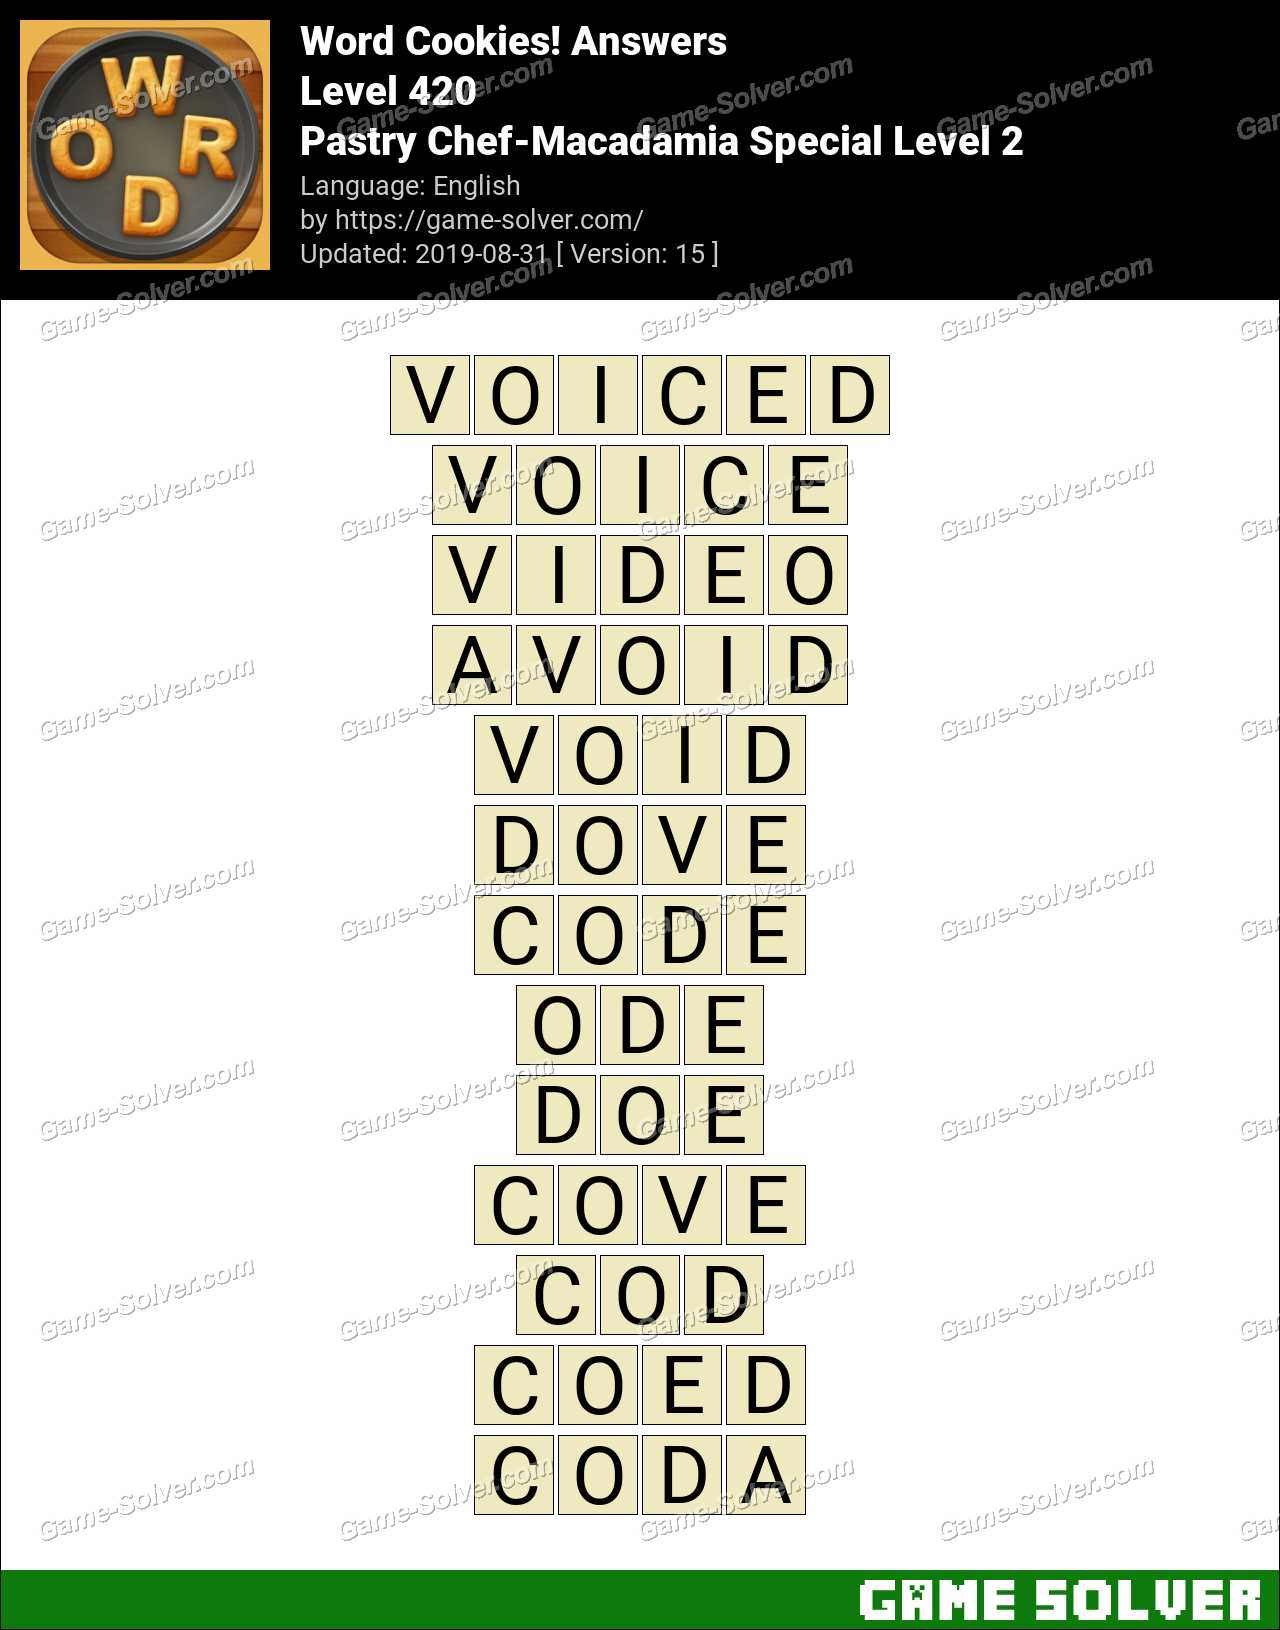 Word Cookies Pastry Chef-Macadamia Special Level 2 Answers